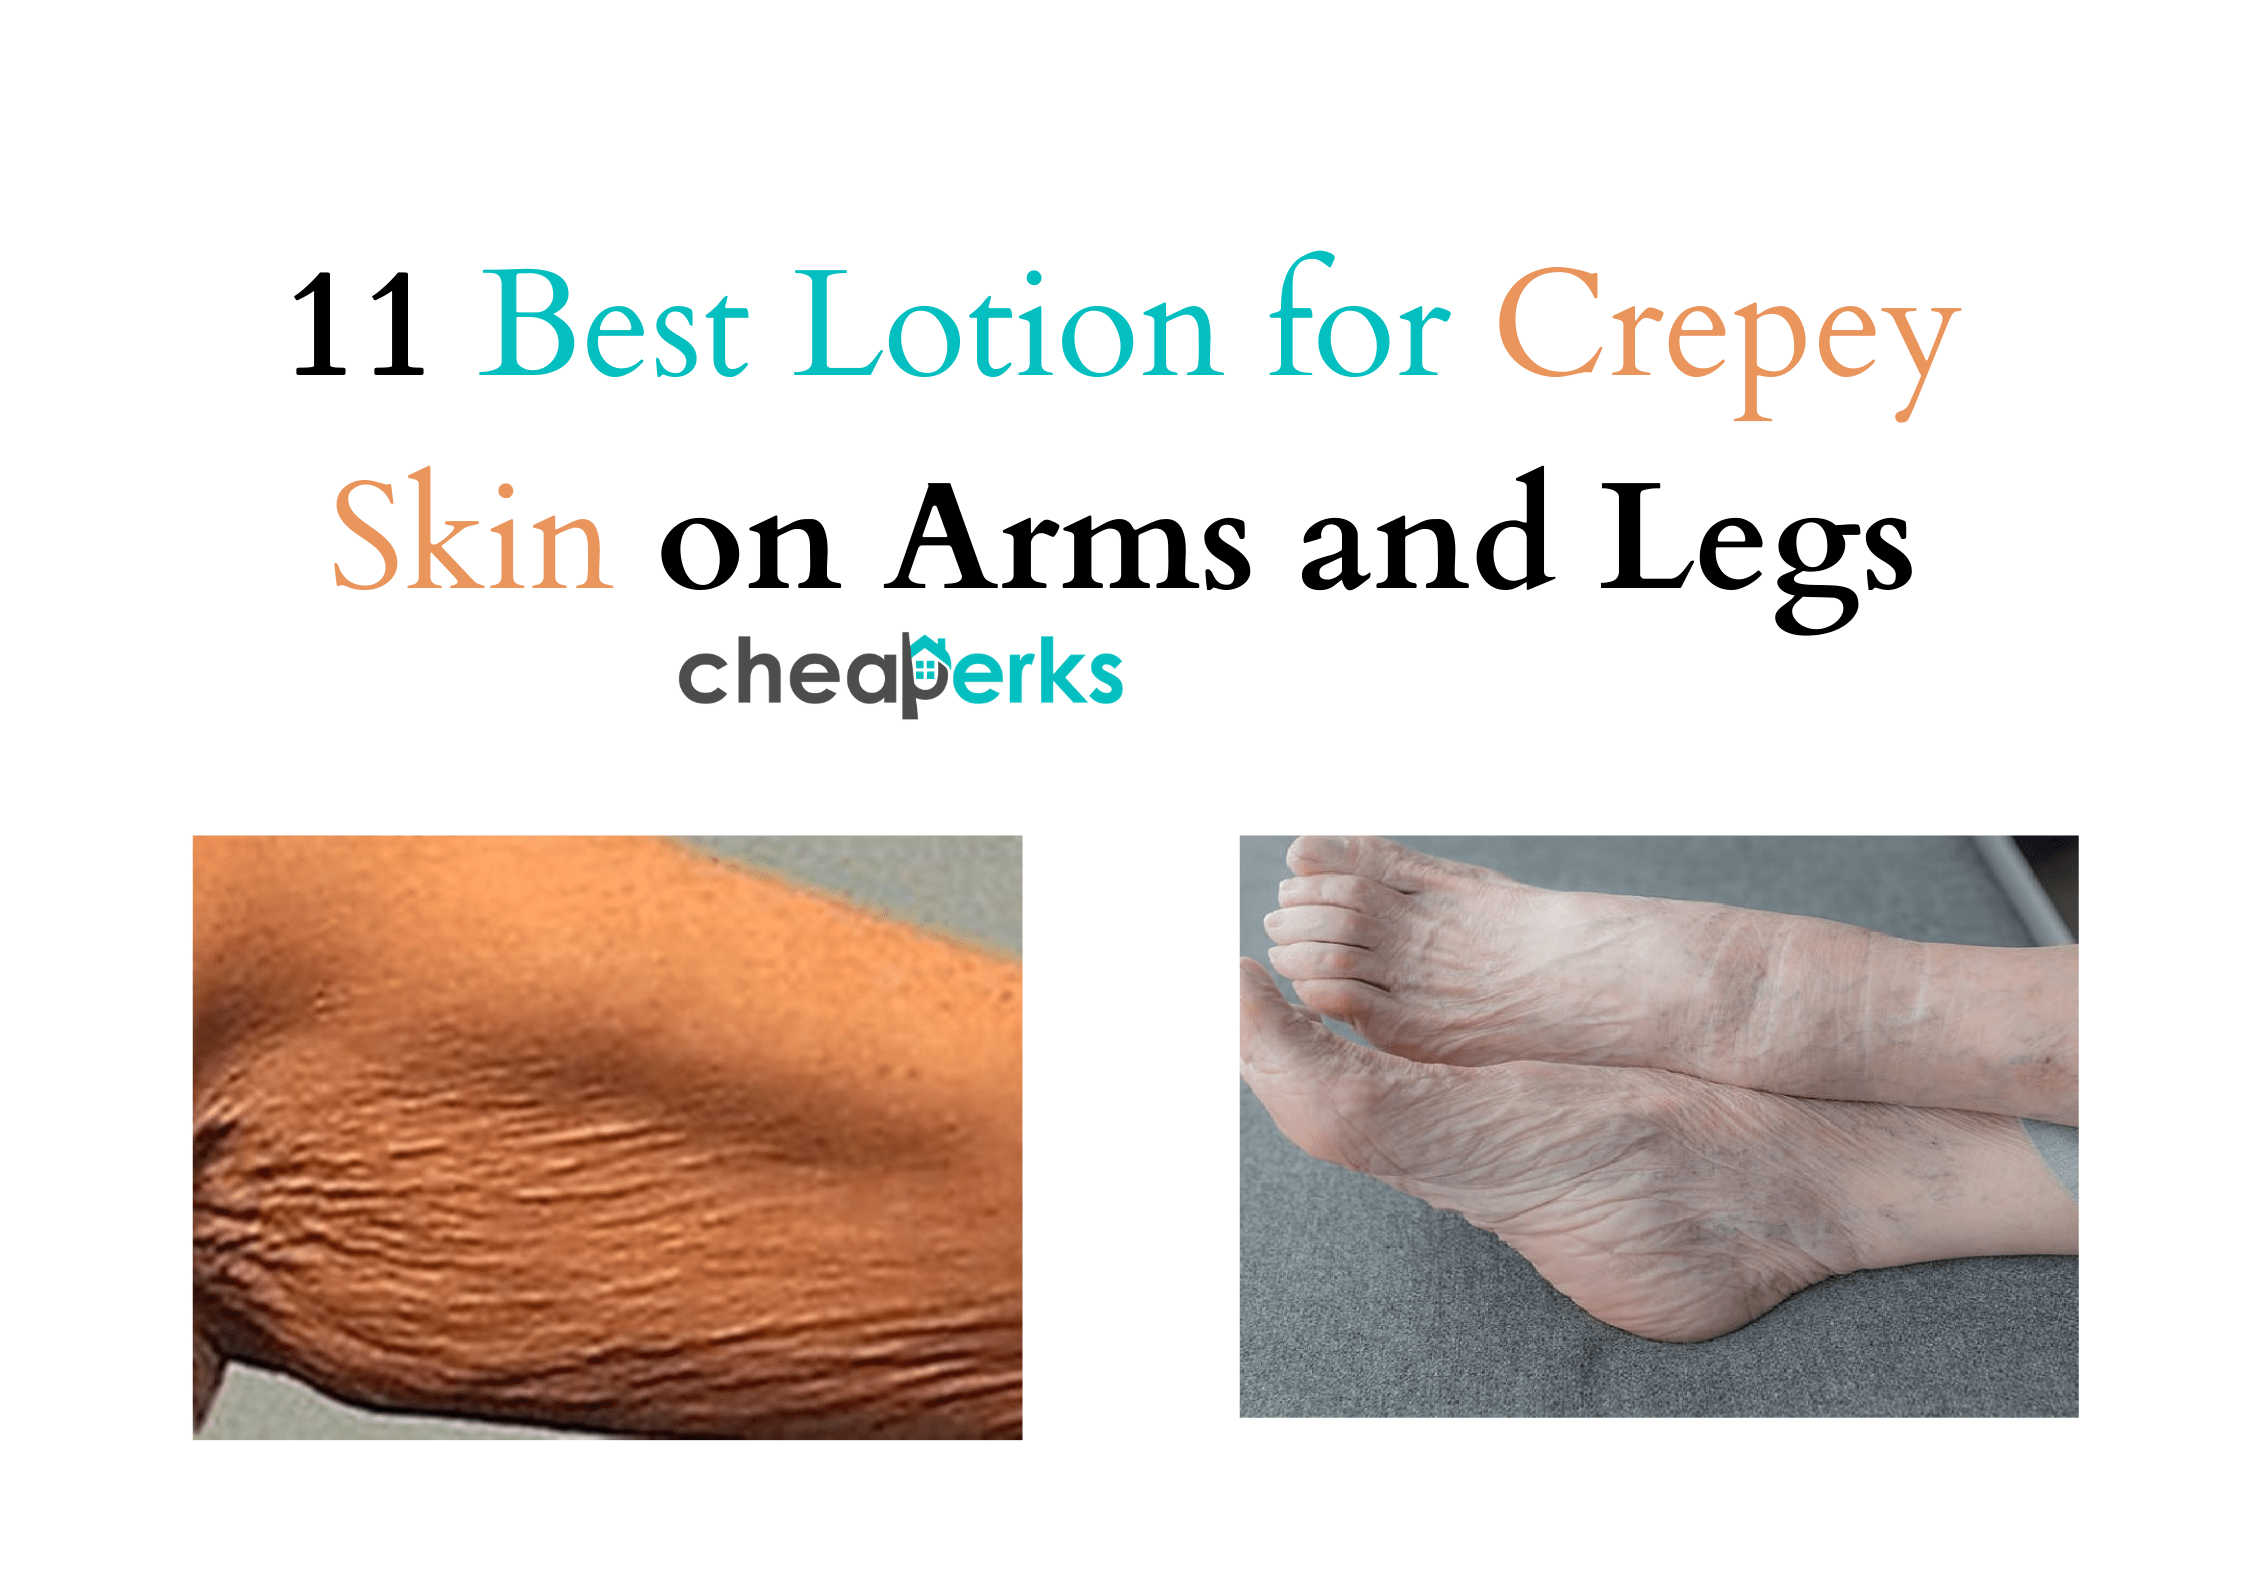 Best Lotion for Crepey Skin on Arms and Legs (1)